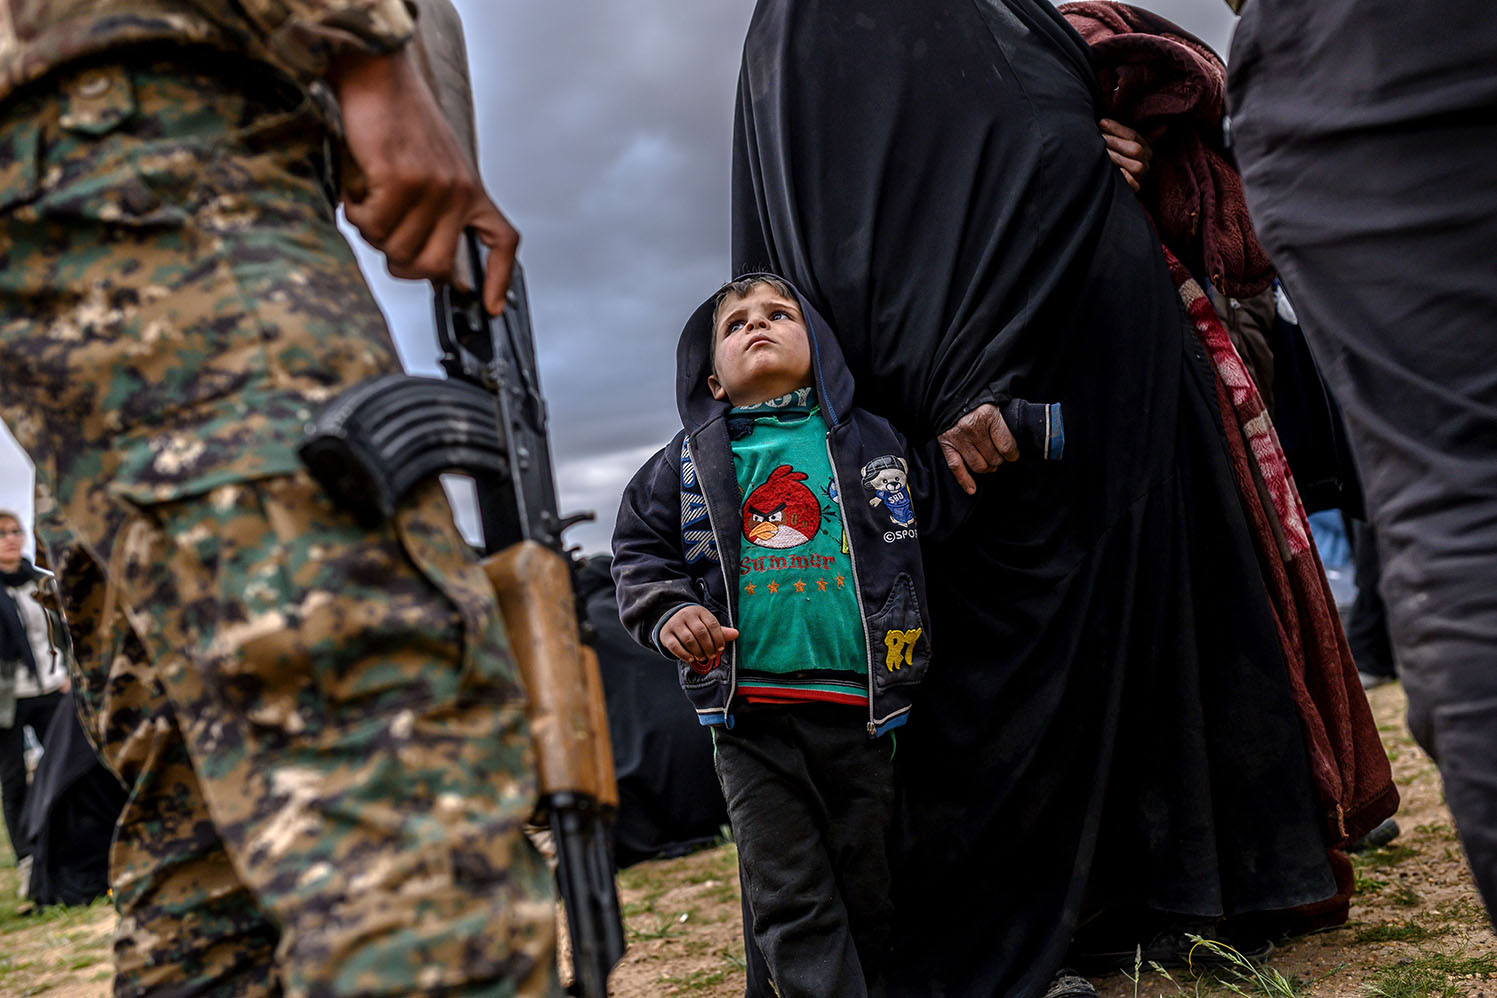 A young child looks at a member of the Kurdish-led Syrian Democratic Forces (after leaving the Islamic State group's last holdout of Baghouz in Syria's northern Deir Ezzor province on Feb. 27. BULENT KILIC/AFP/Getty Images